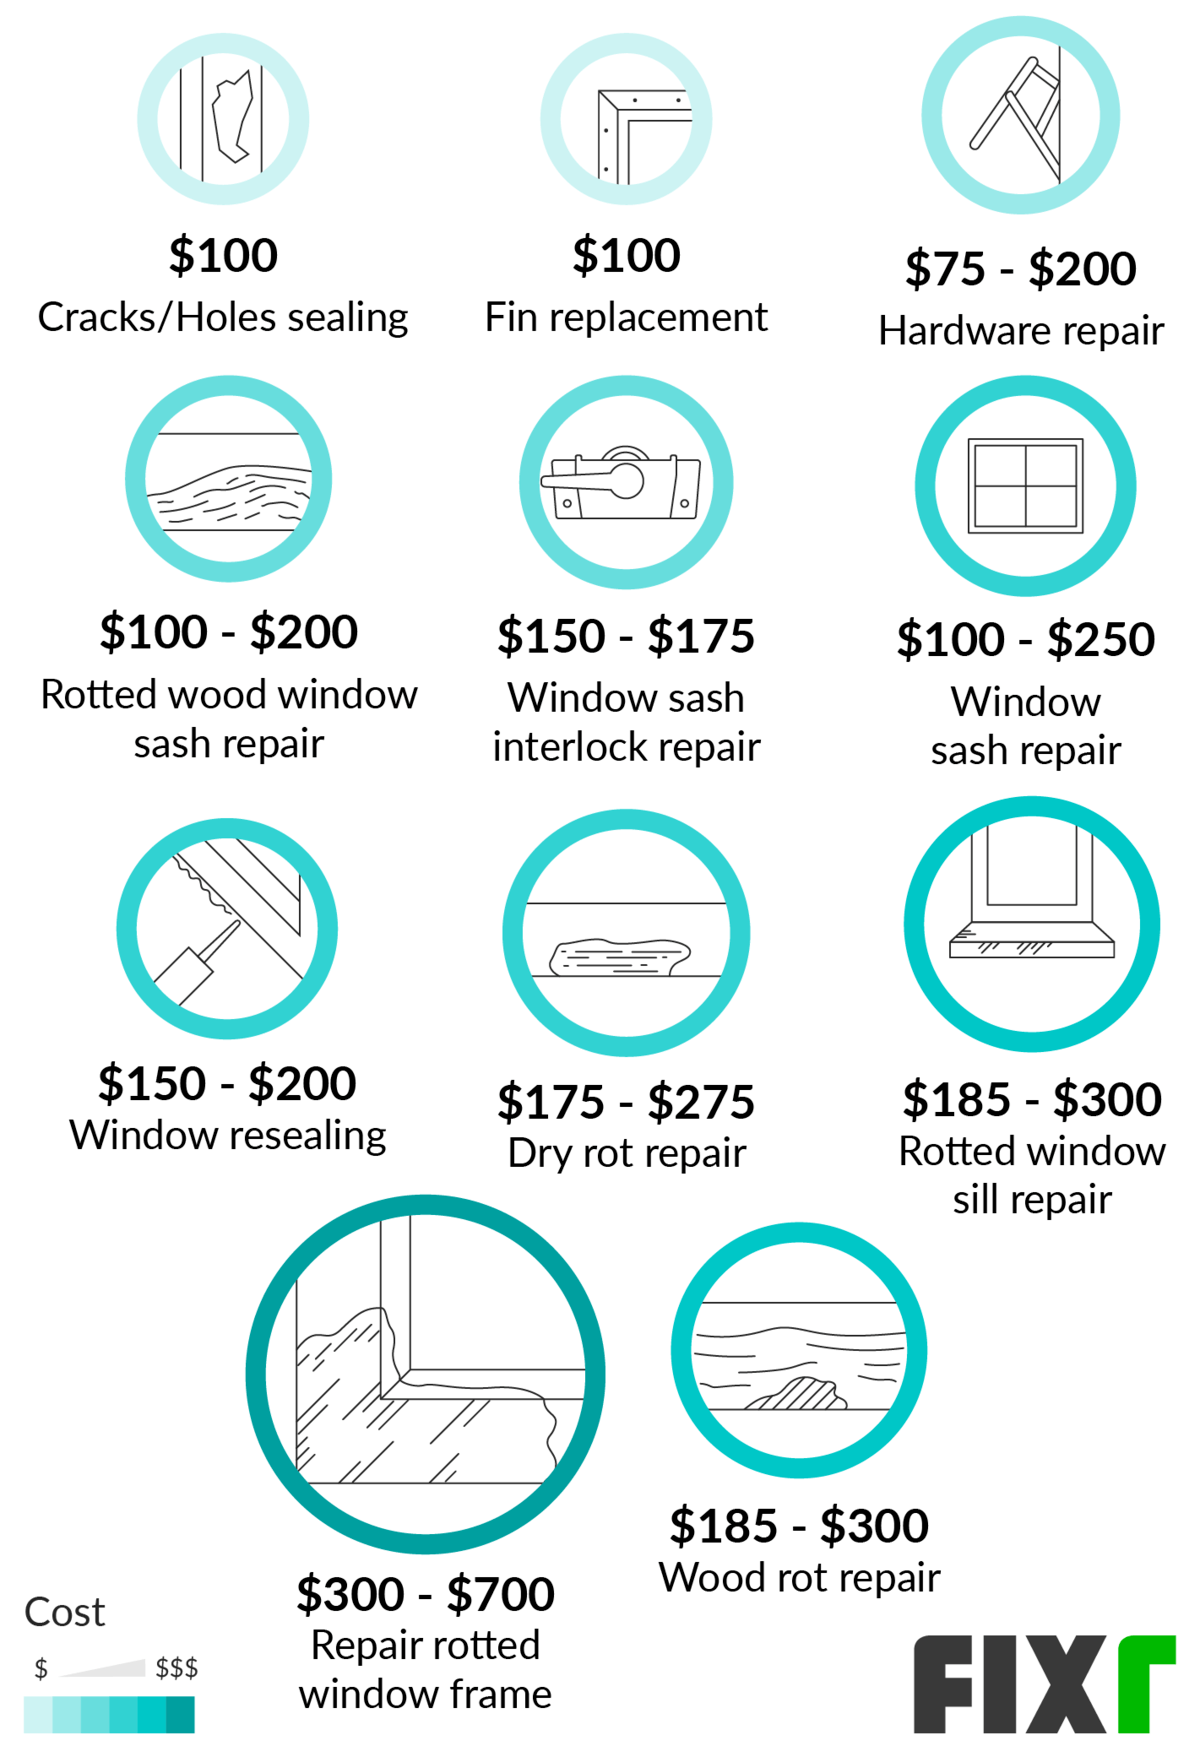 2020 Window Frame Repair Cost Cost To Replace Rotted Window Frame